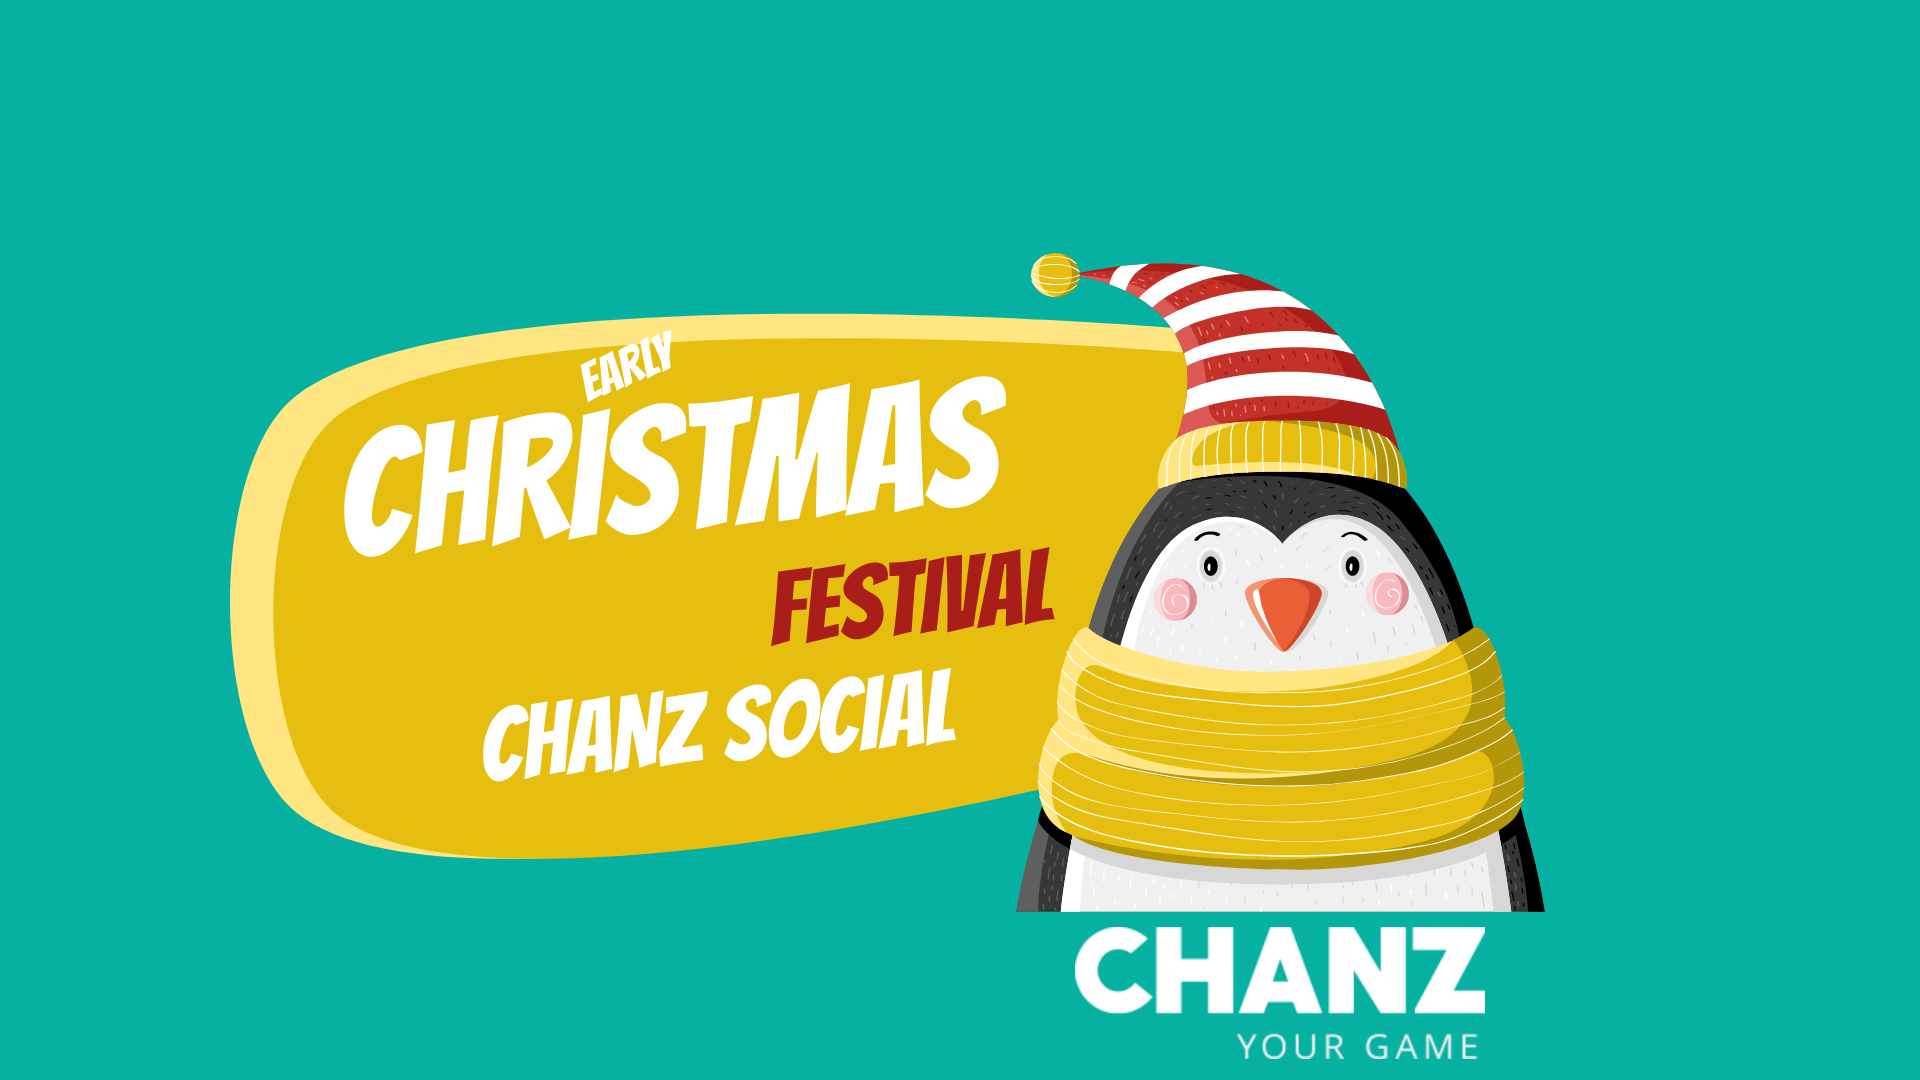 Day 4 – Chanz Social X-mas